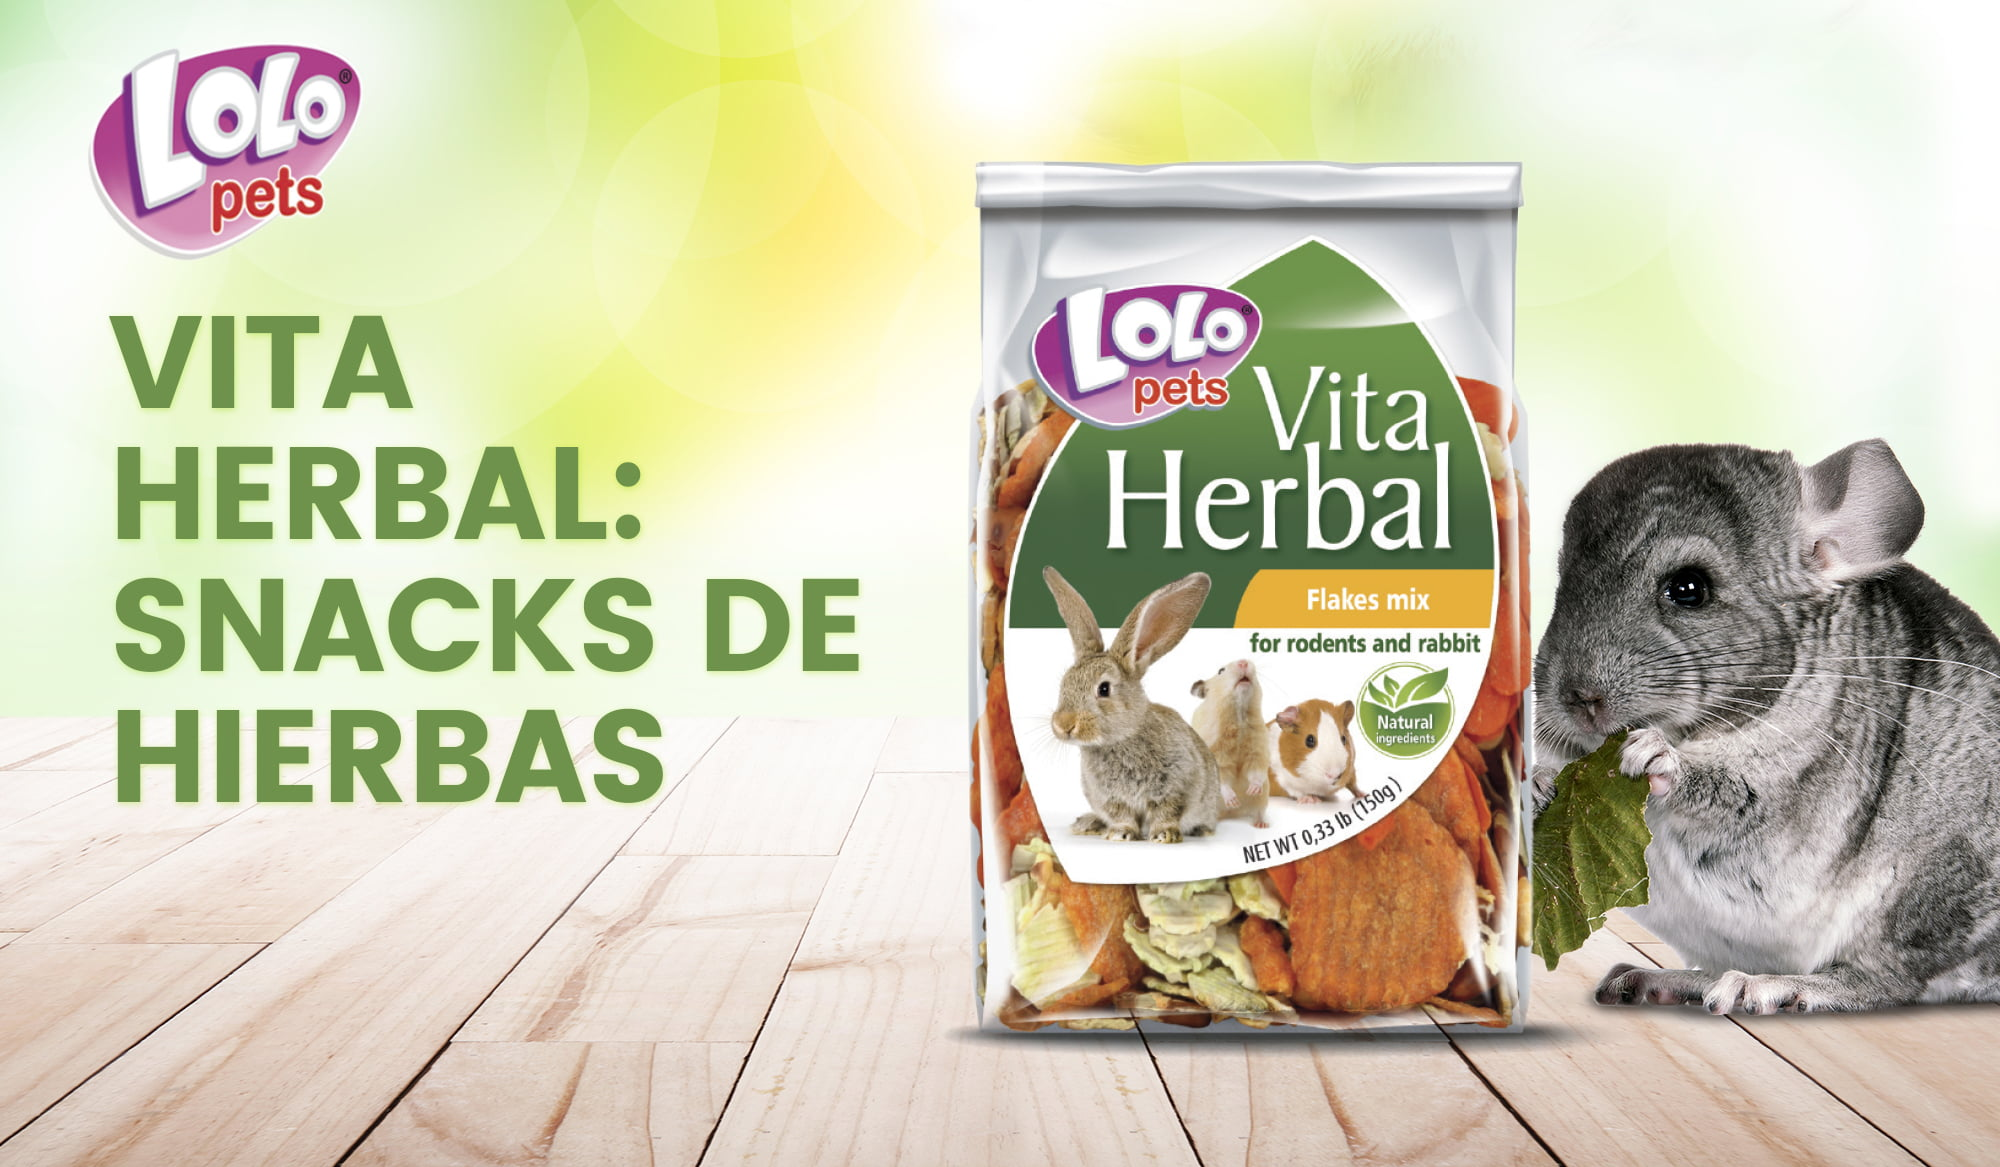 Vita Herbal: snacks de hierbas para roedores